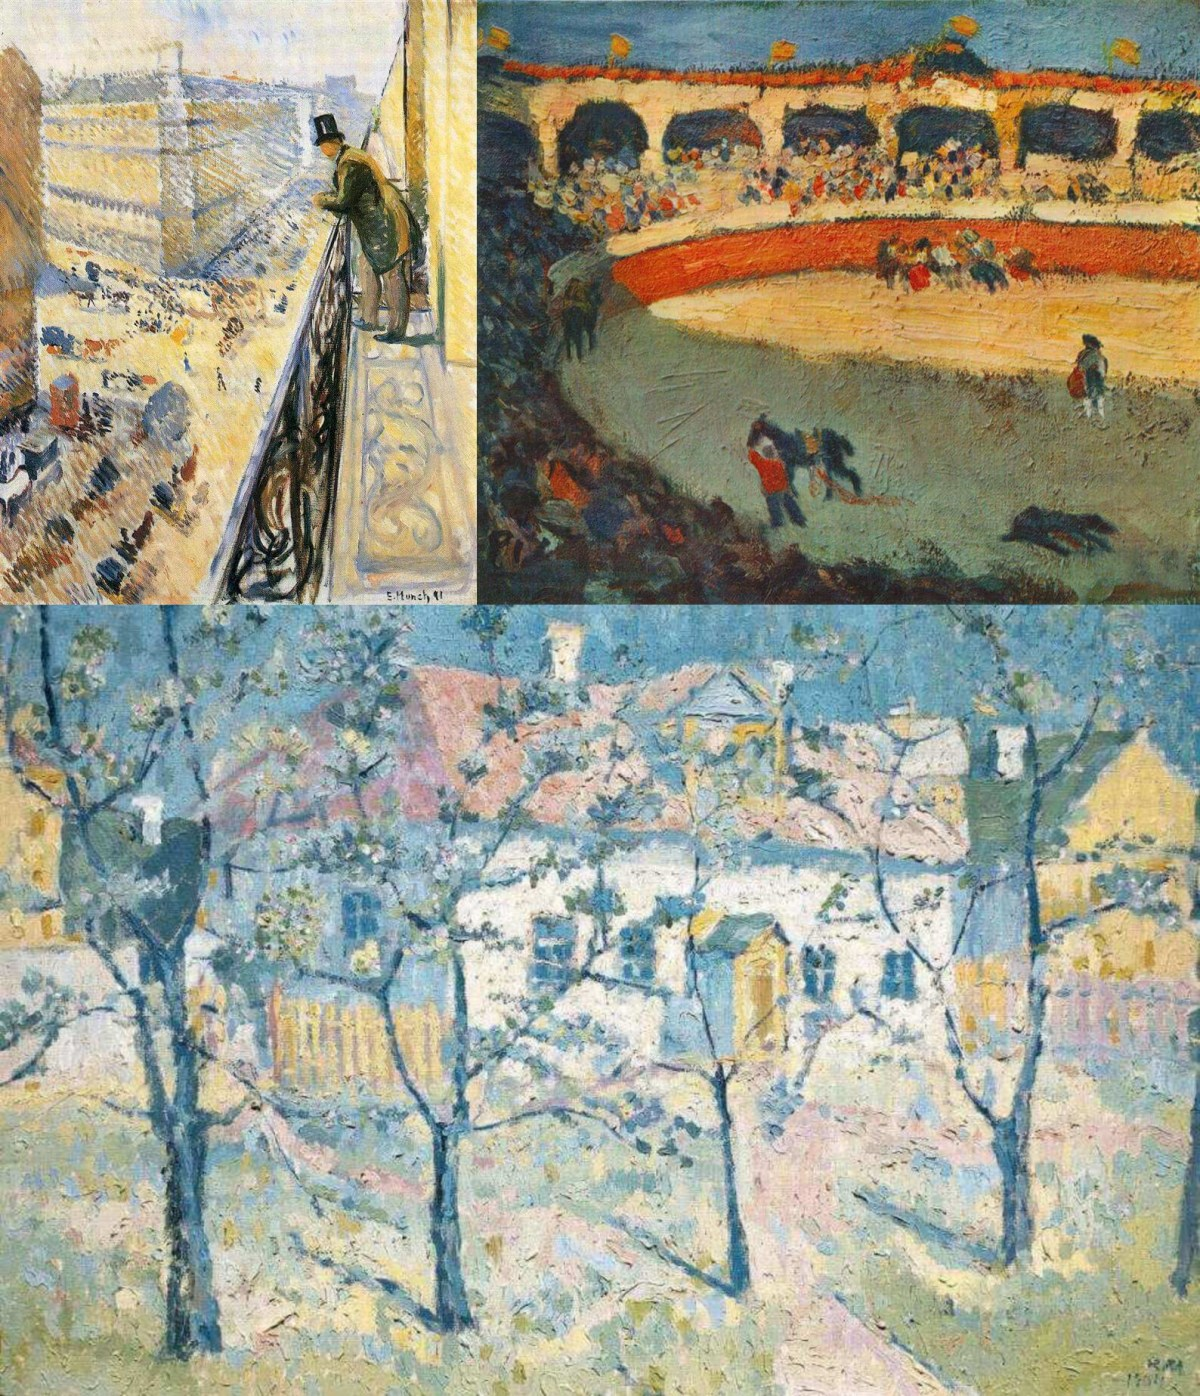 Munk, Picasso and Malevich as impressionists